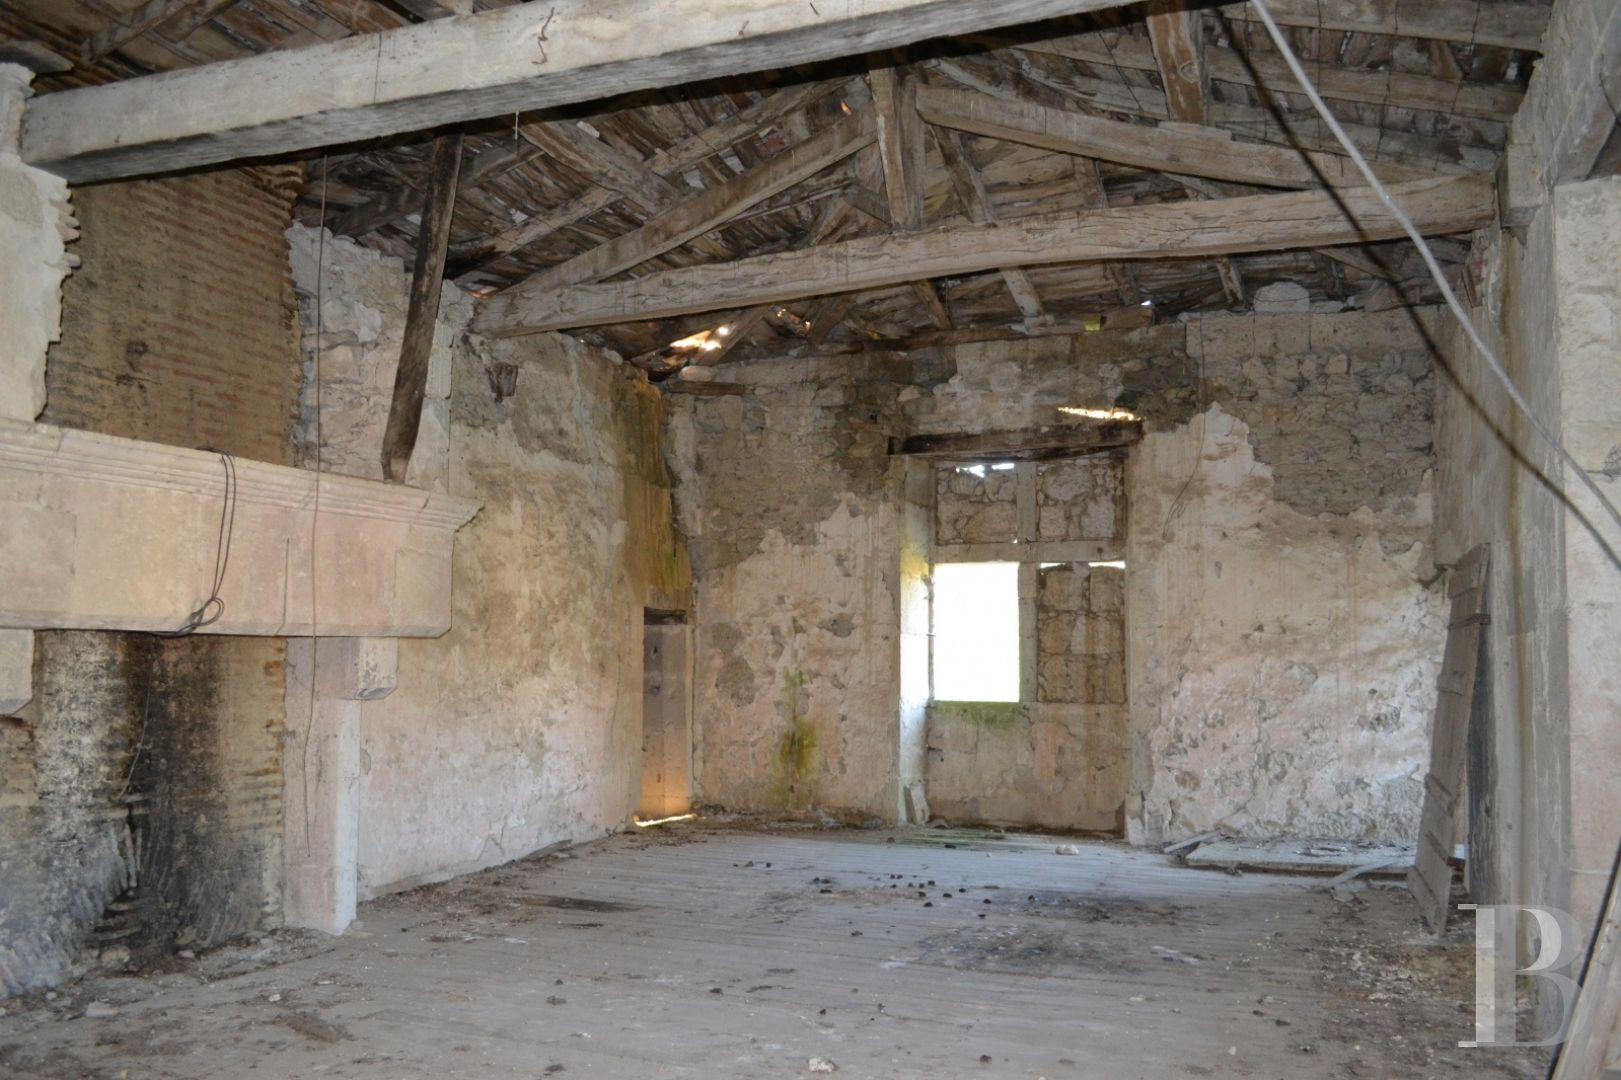 property for sale France aquitaine stronghold house - 14 zoom